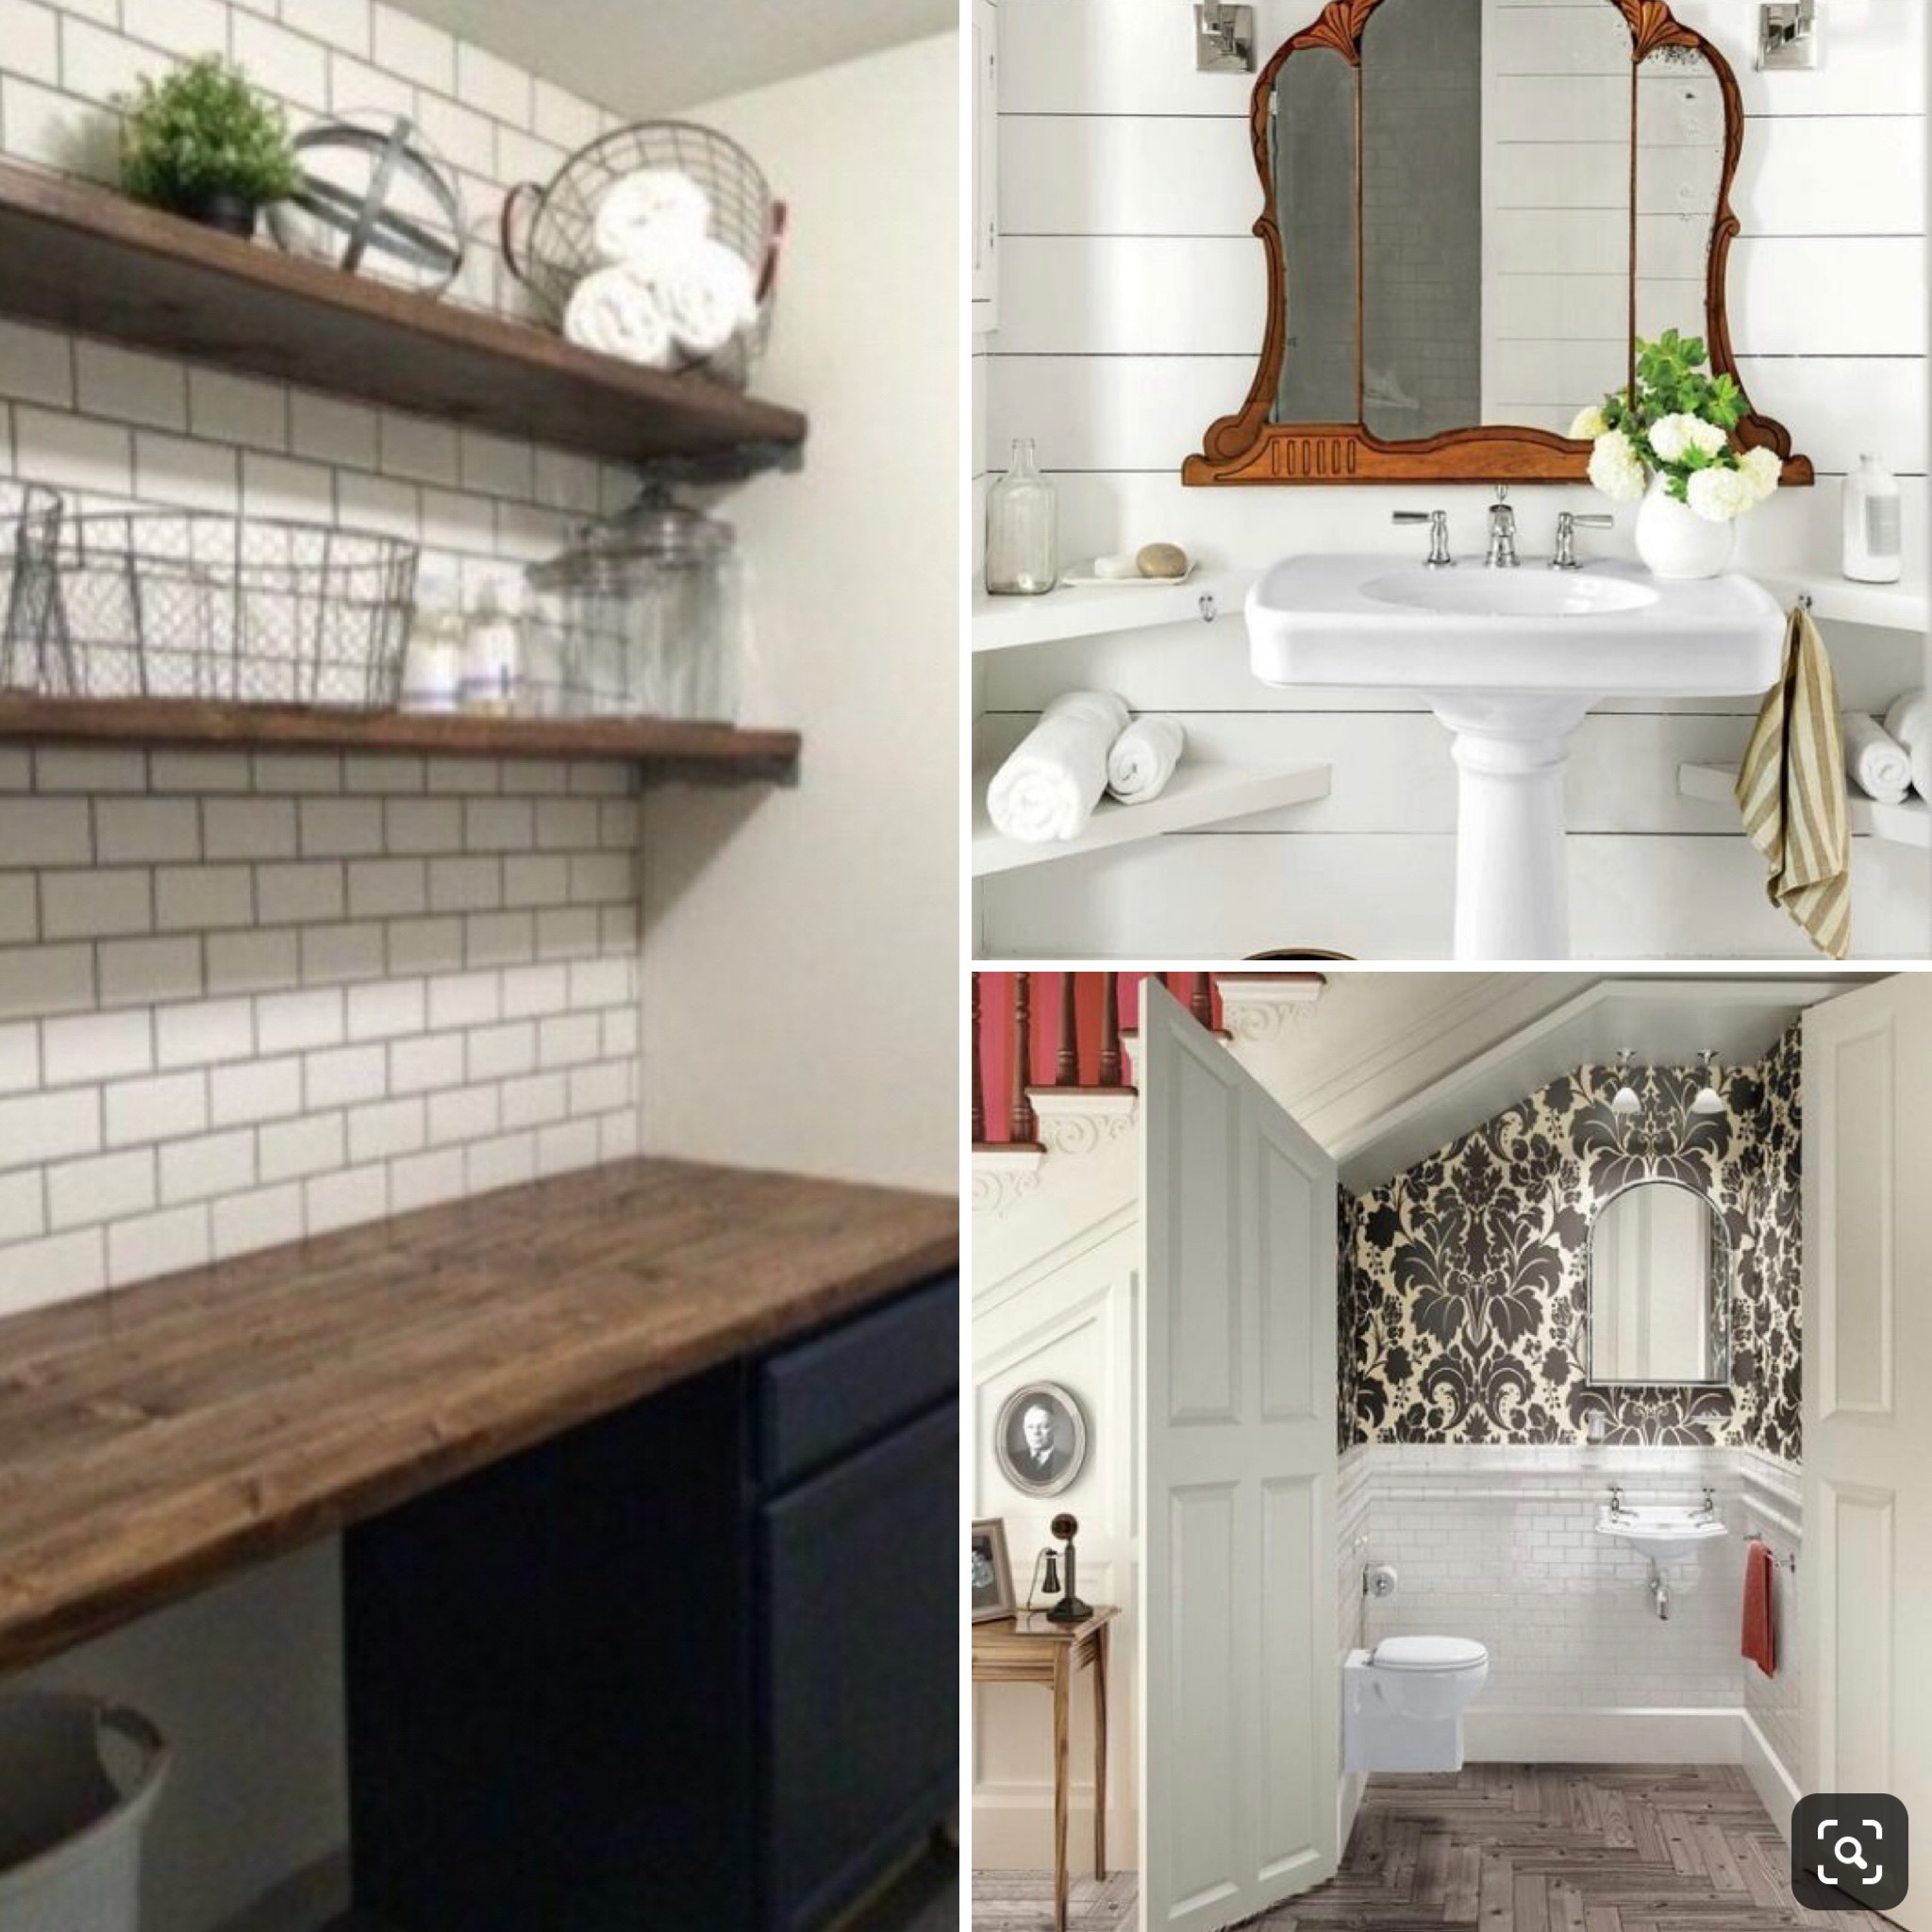 Inspiration - Shiplap walls & corner sink tucked under the stairs, subway tile wall & wood shelves in the laundry